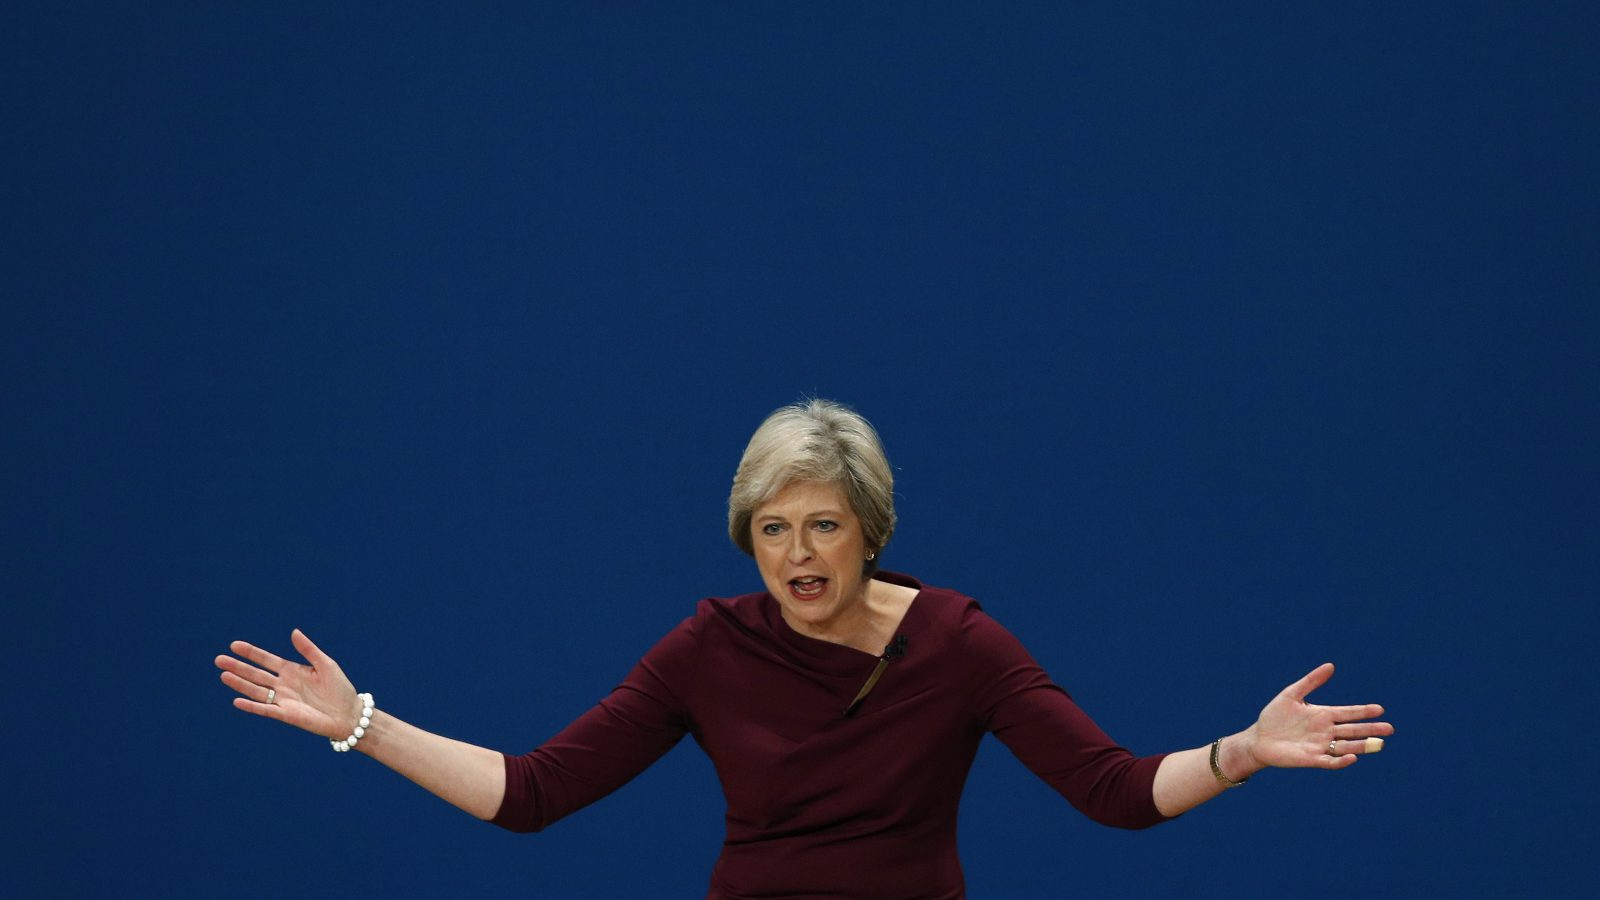 Britain's Prime Minister Theresa May gestures after giving her speech on the final day of the annual Conservative Party Conference in Birmingham, Britain, October 5, 2016.      REUTERS/Darren Staples   - RTSQUZQ